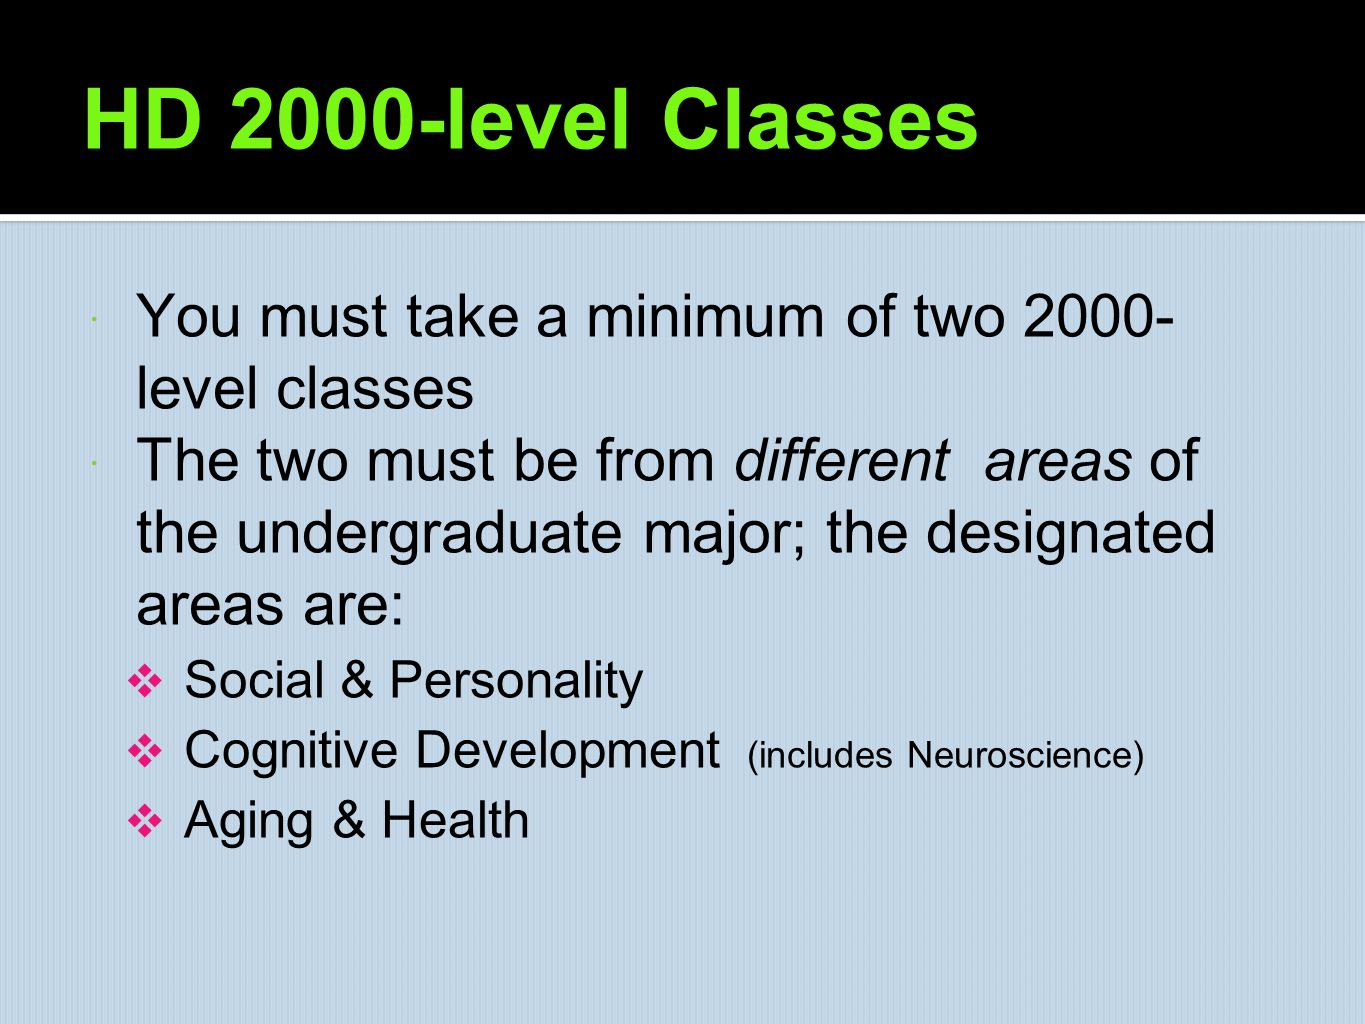 HD 2000-level Classes You must take a minimum of two 2000-level classes.